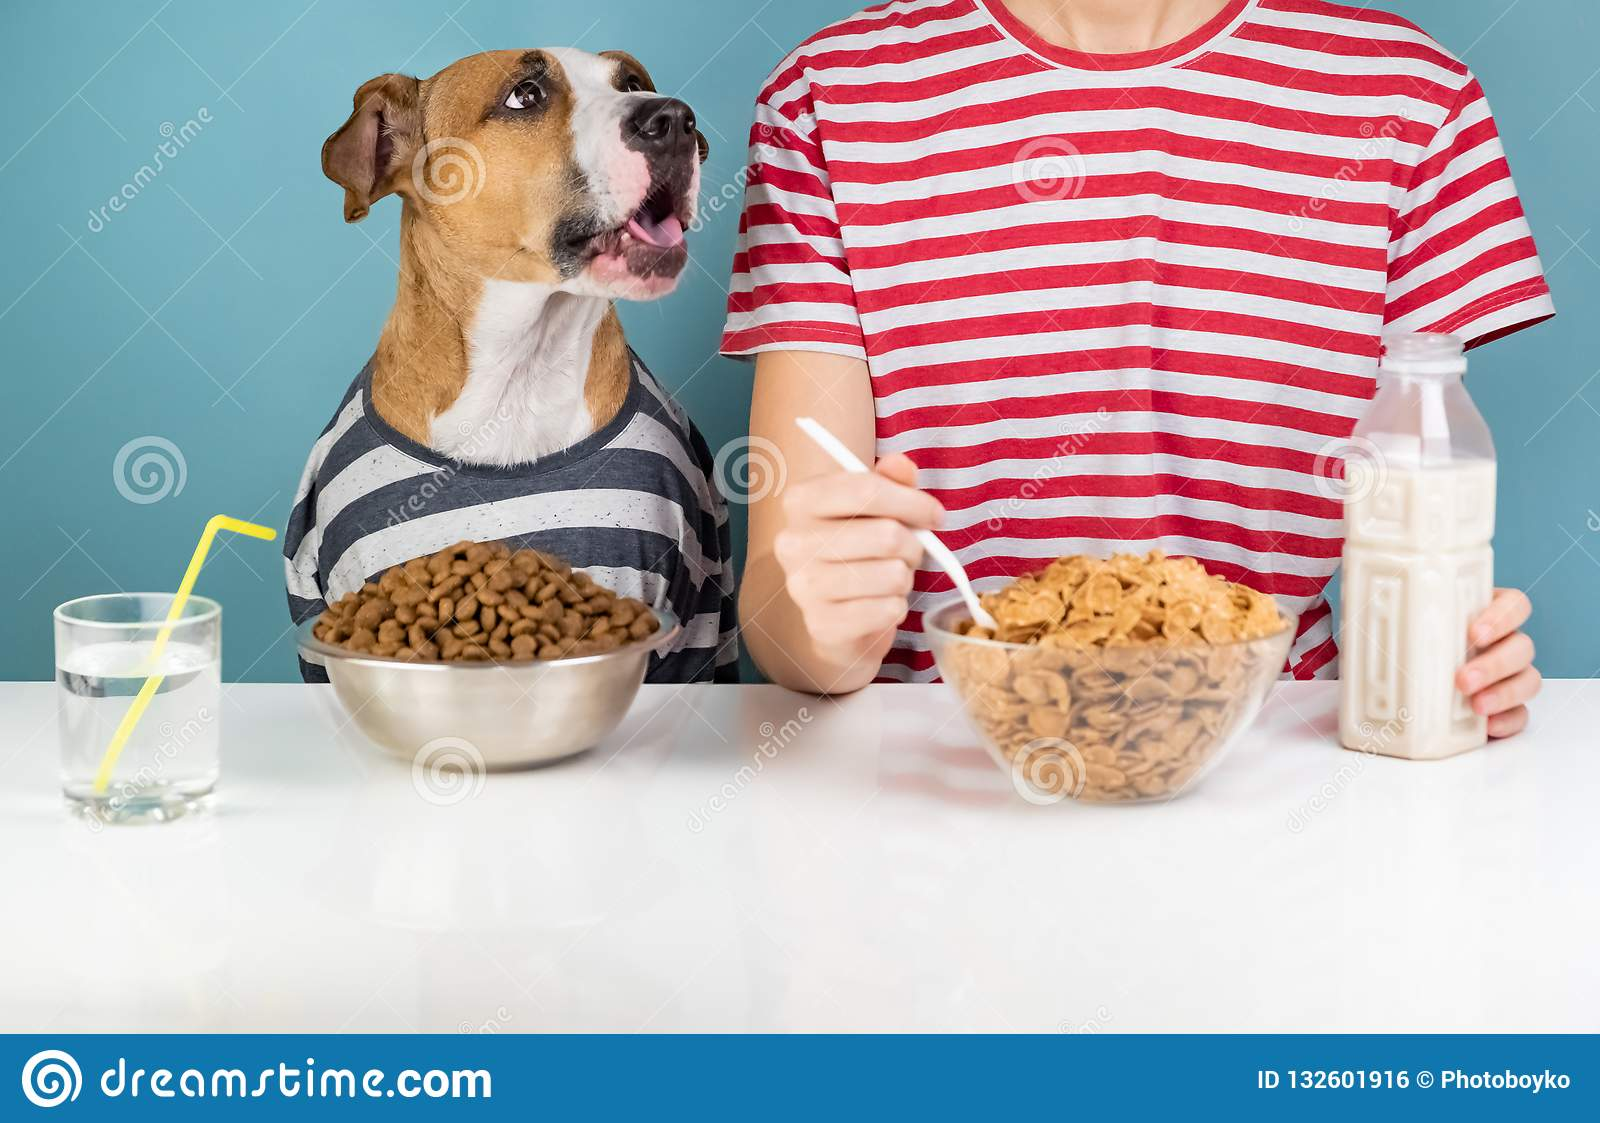 Hungry dog and human having breakfast together. Minimalistic ill